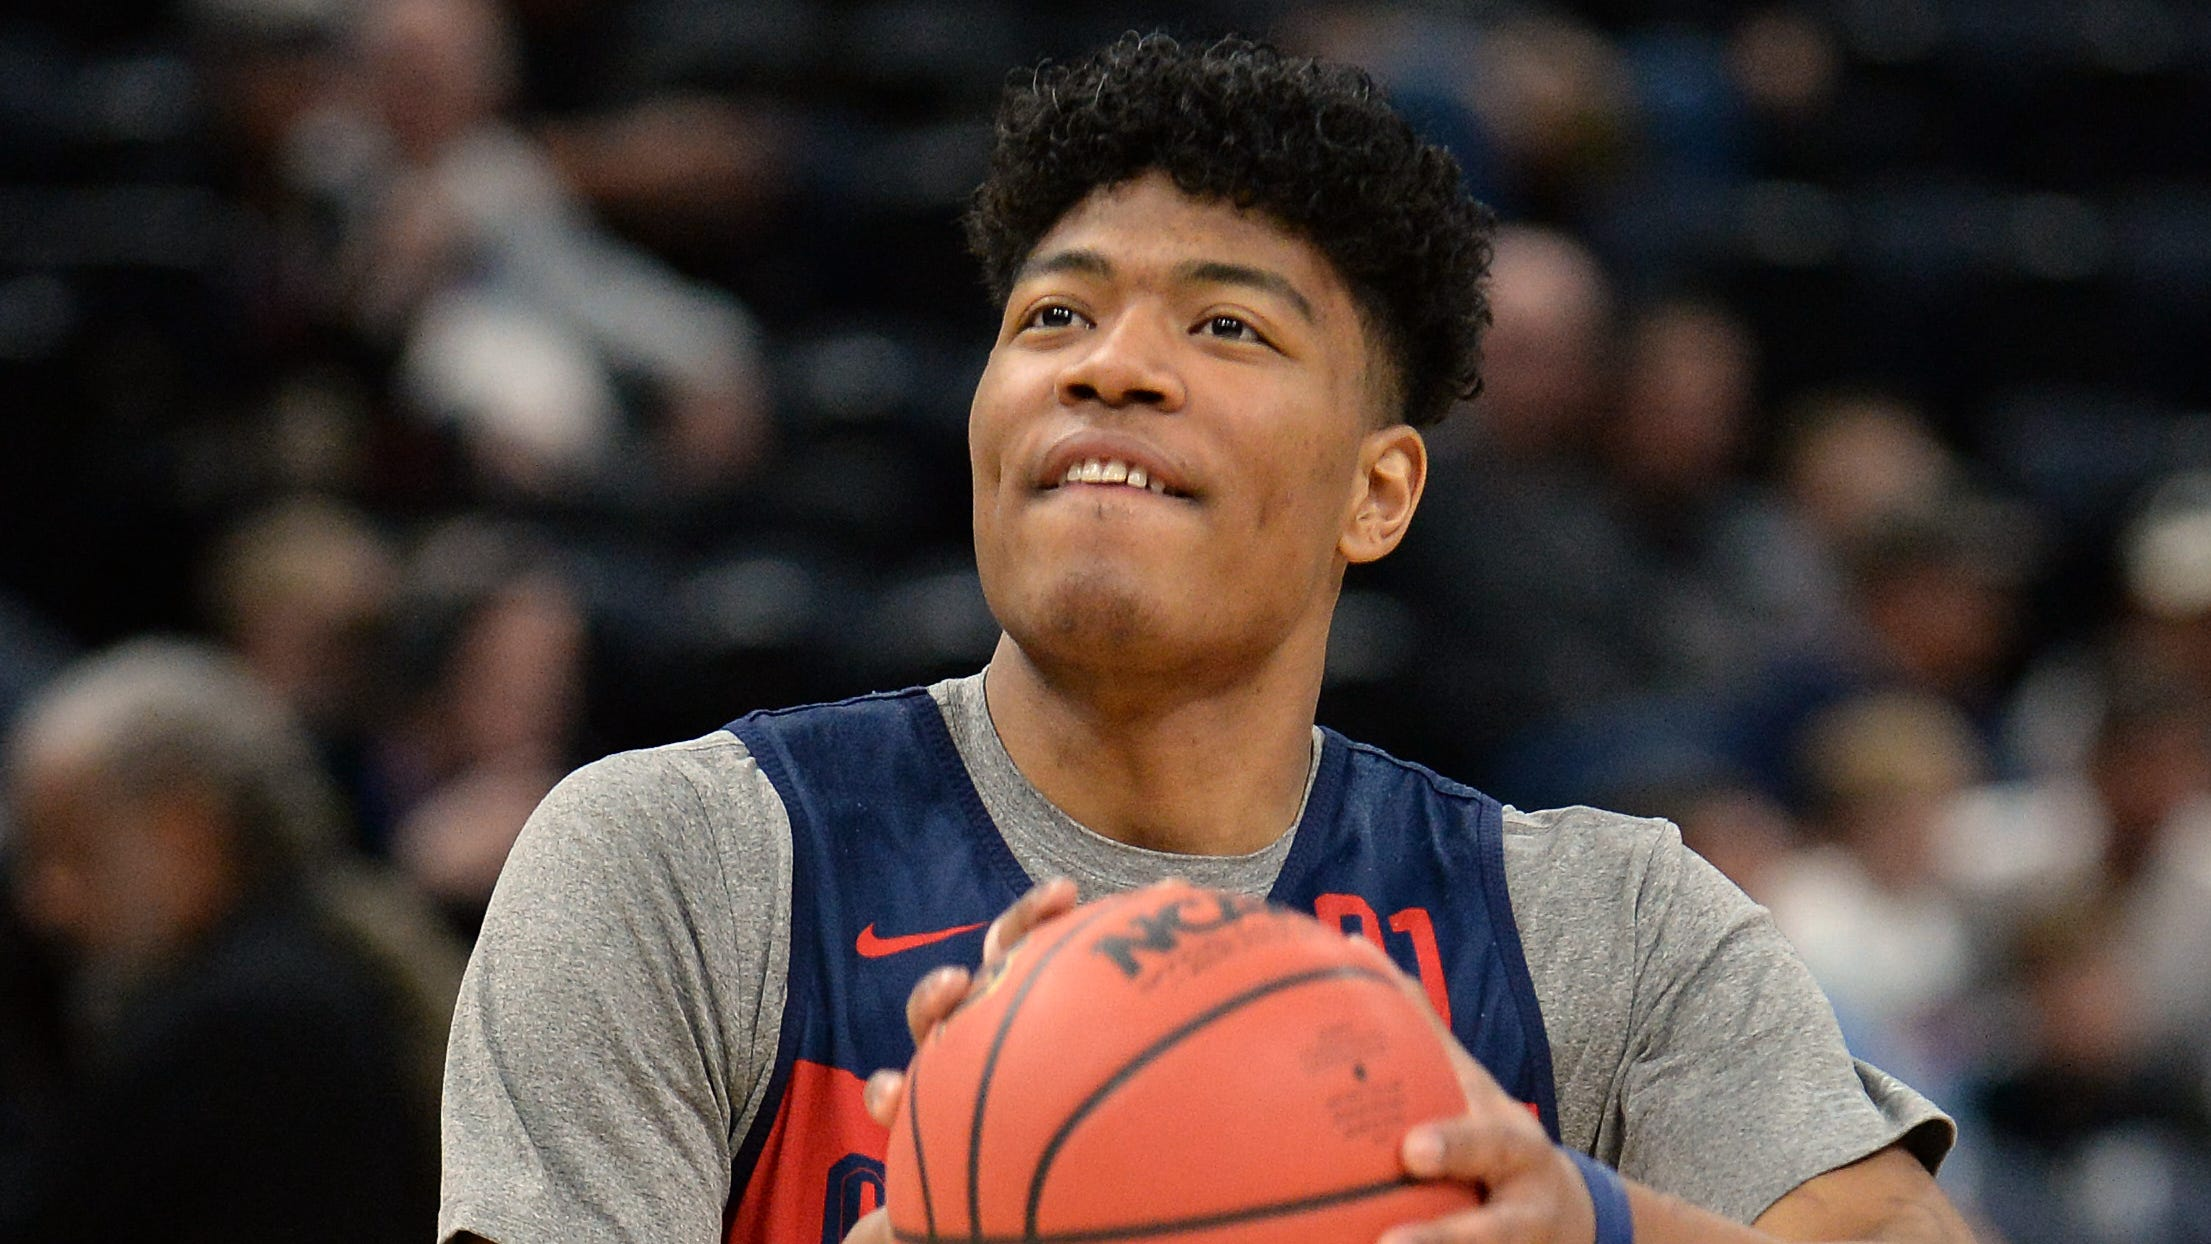 March 20, 2019; Salt Lake City, UT, USA; Gonzaga Bulldogs forward Rui Hachimura (21) shoots during practice before the first round of the 2019 NCAA Tournament at Vivint Smart Home Arena. Mandatory Credit: Gary A. Vasquez-USA TODAY Sports ORG XMIT: USATSI-401045 ORIG FILE ID:  20190320_gav_sv5_054.jpg